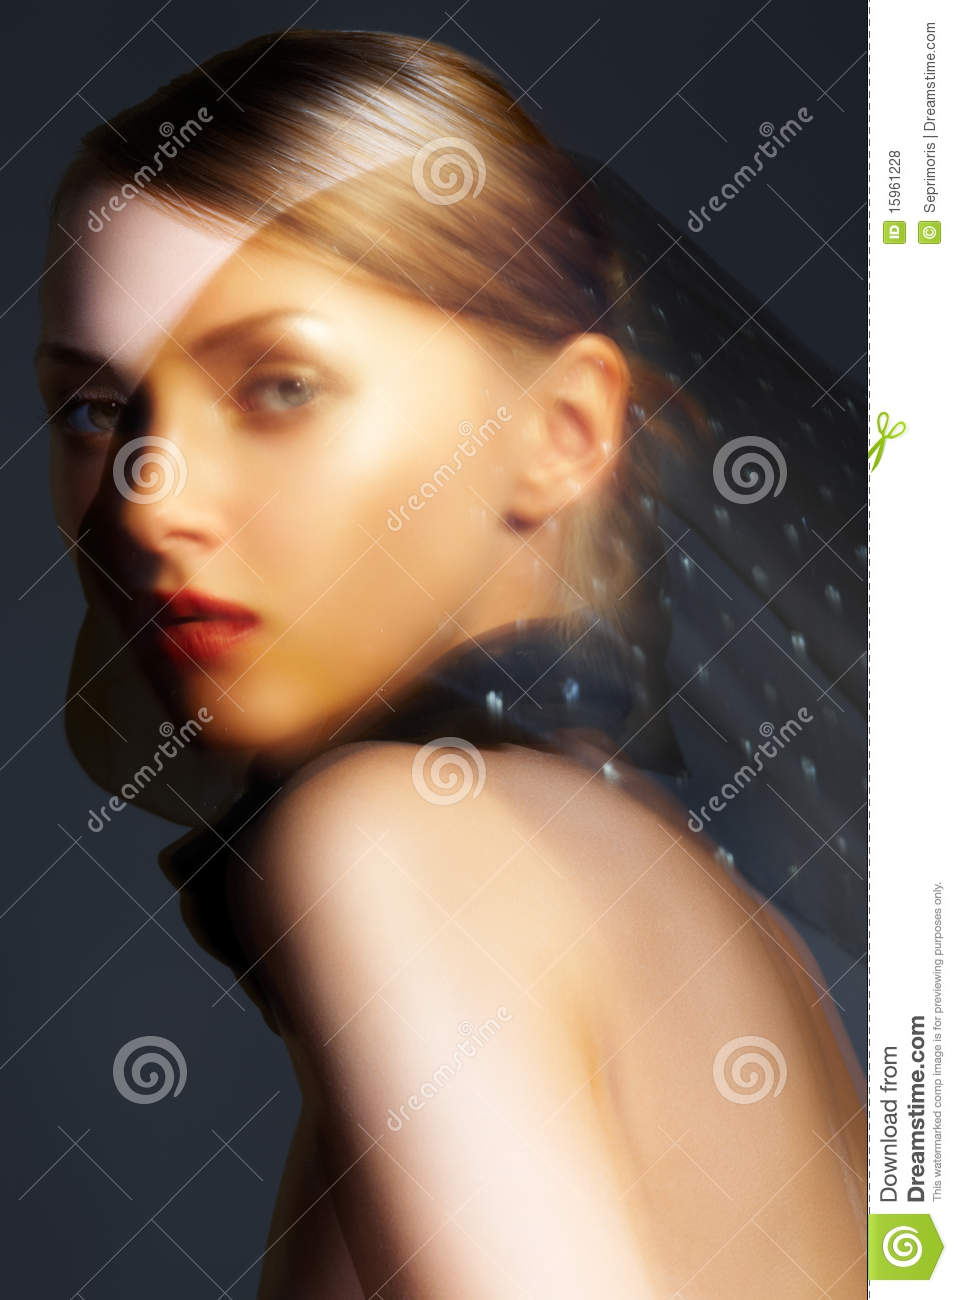 Accessory Chic Woman Model With Black Silk Scarf Stock